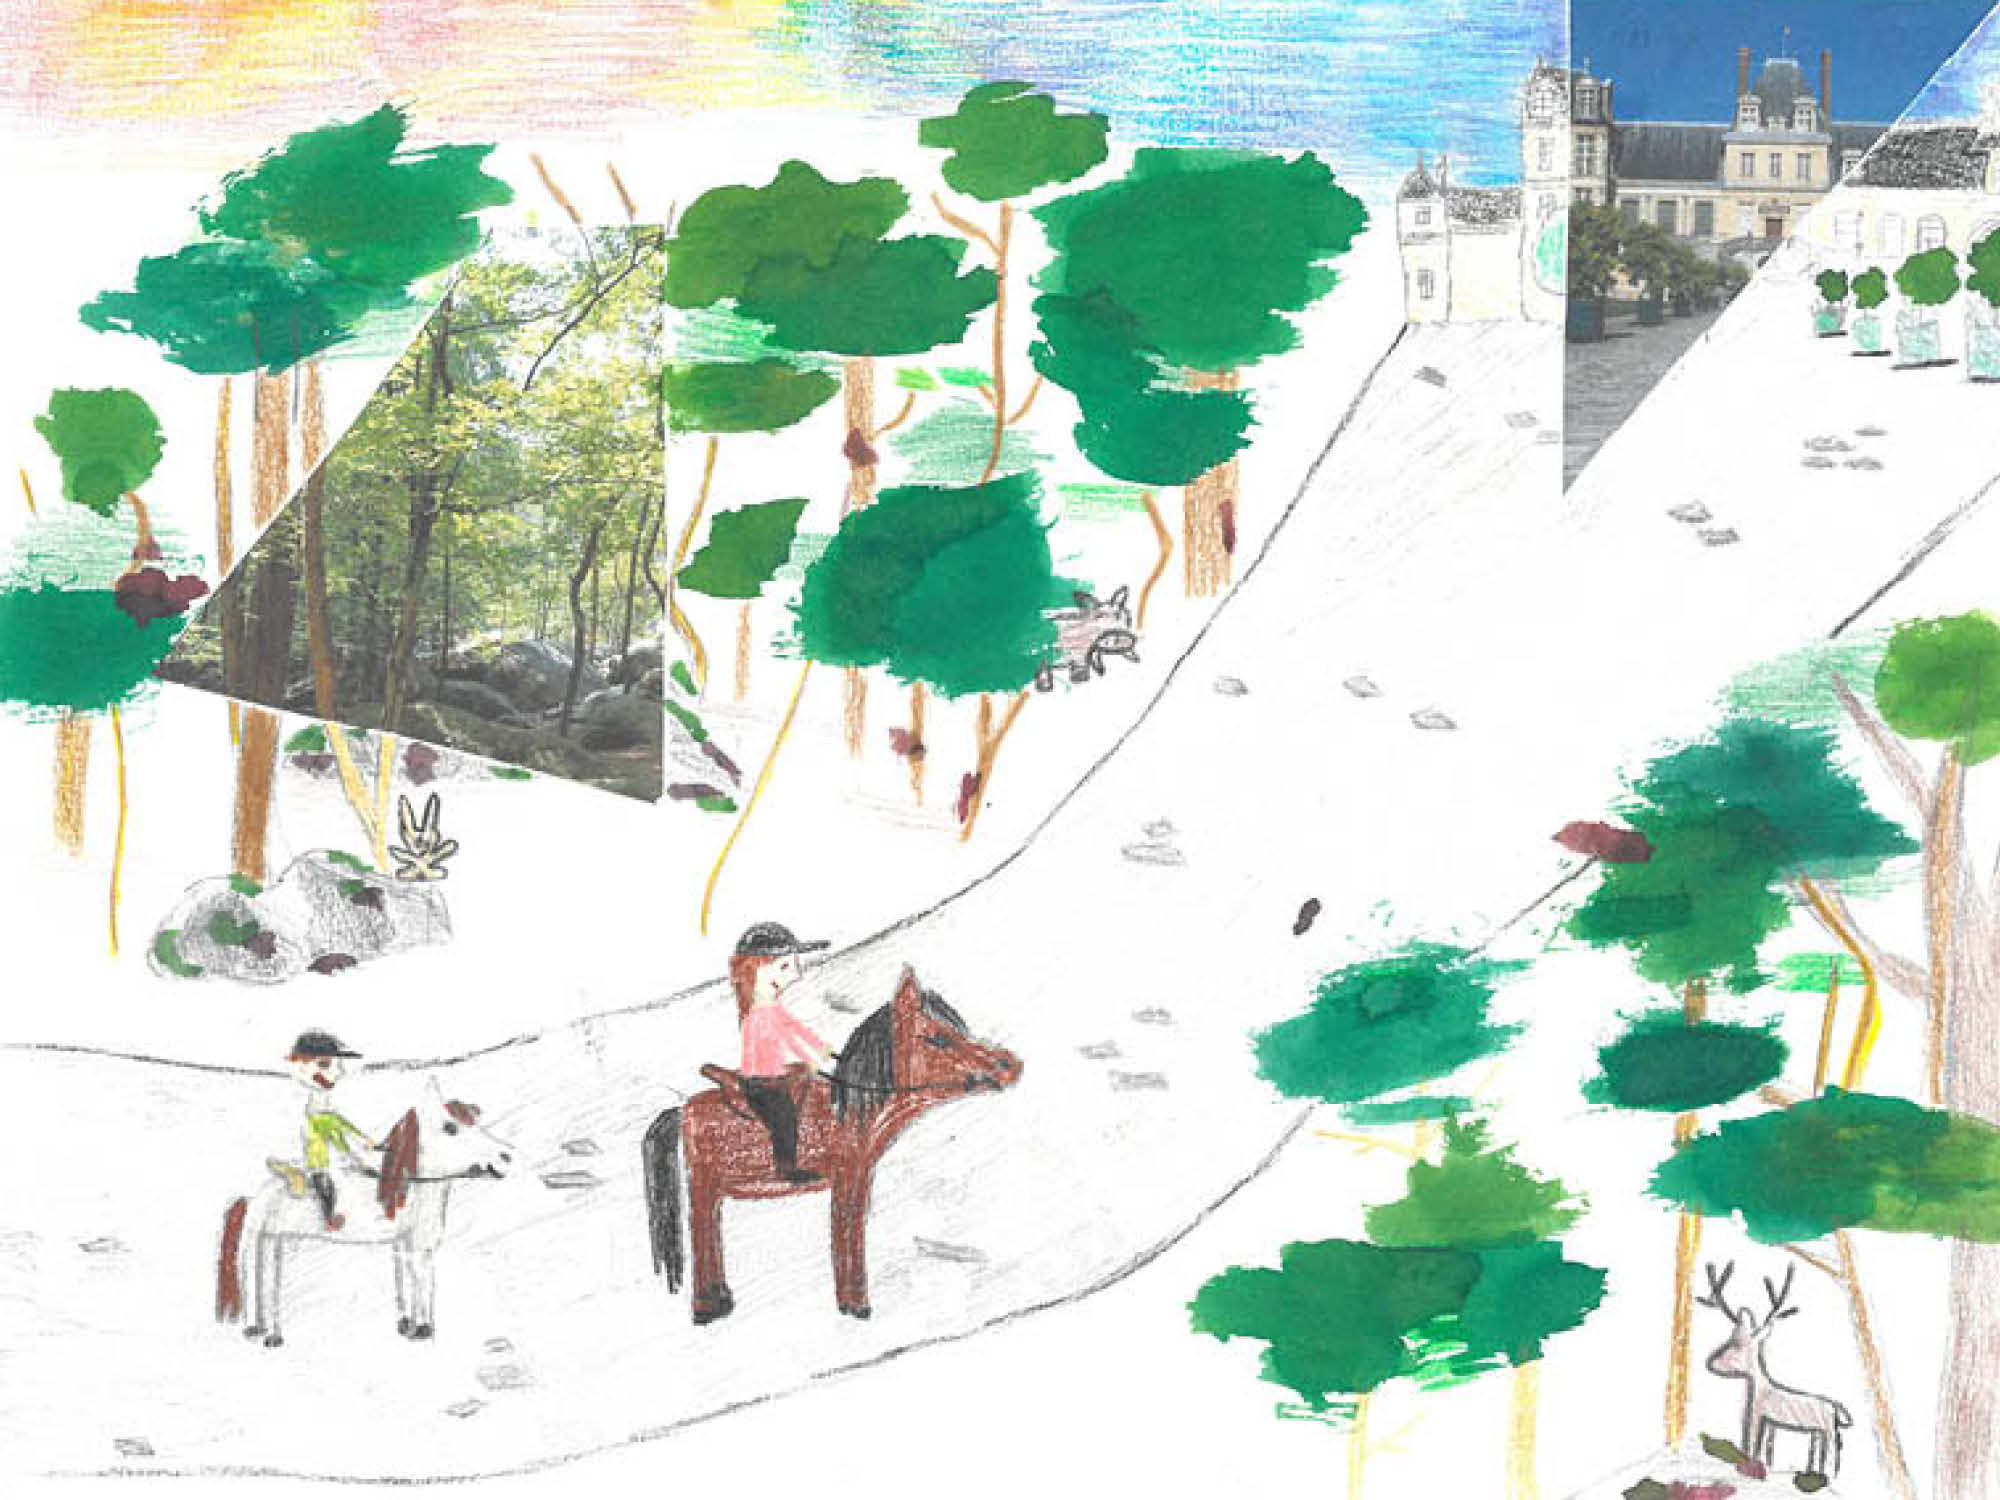 lily rose Morlé laureate concours dessin categorie ndividuelle